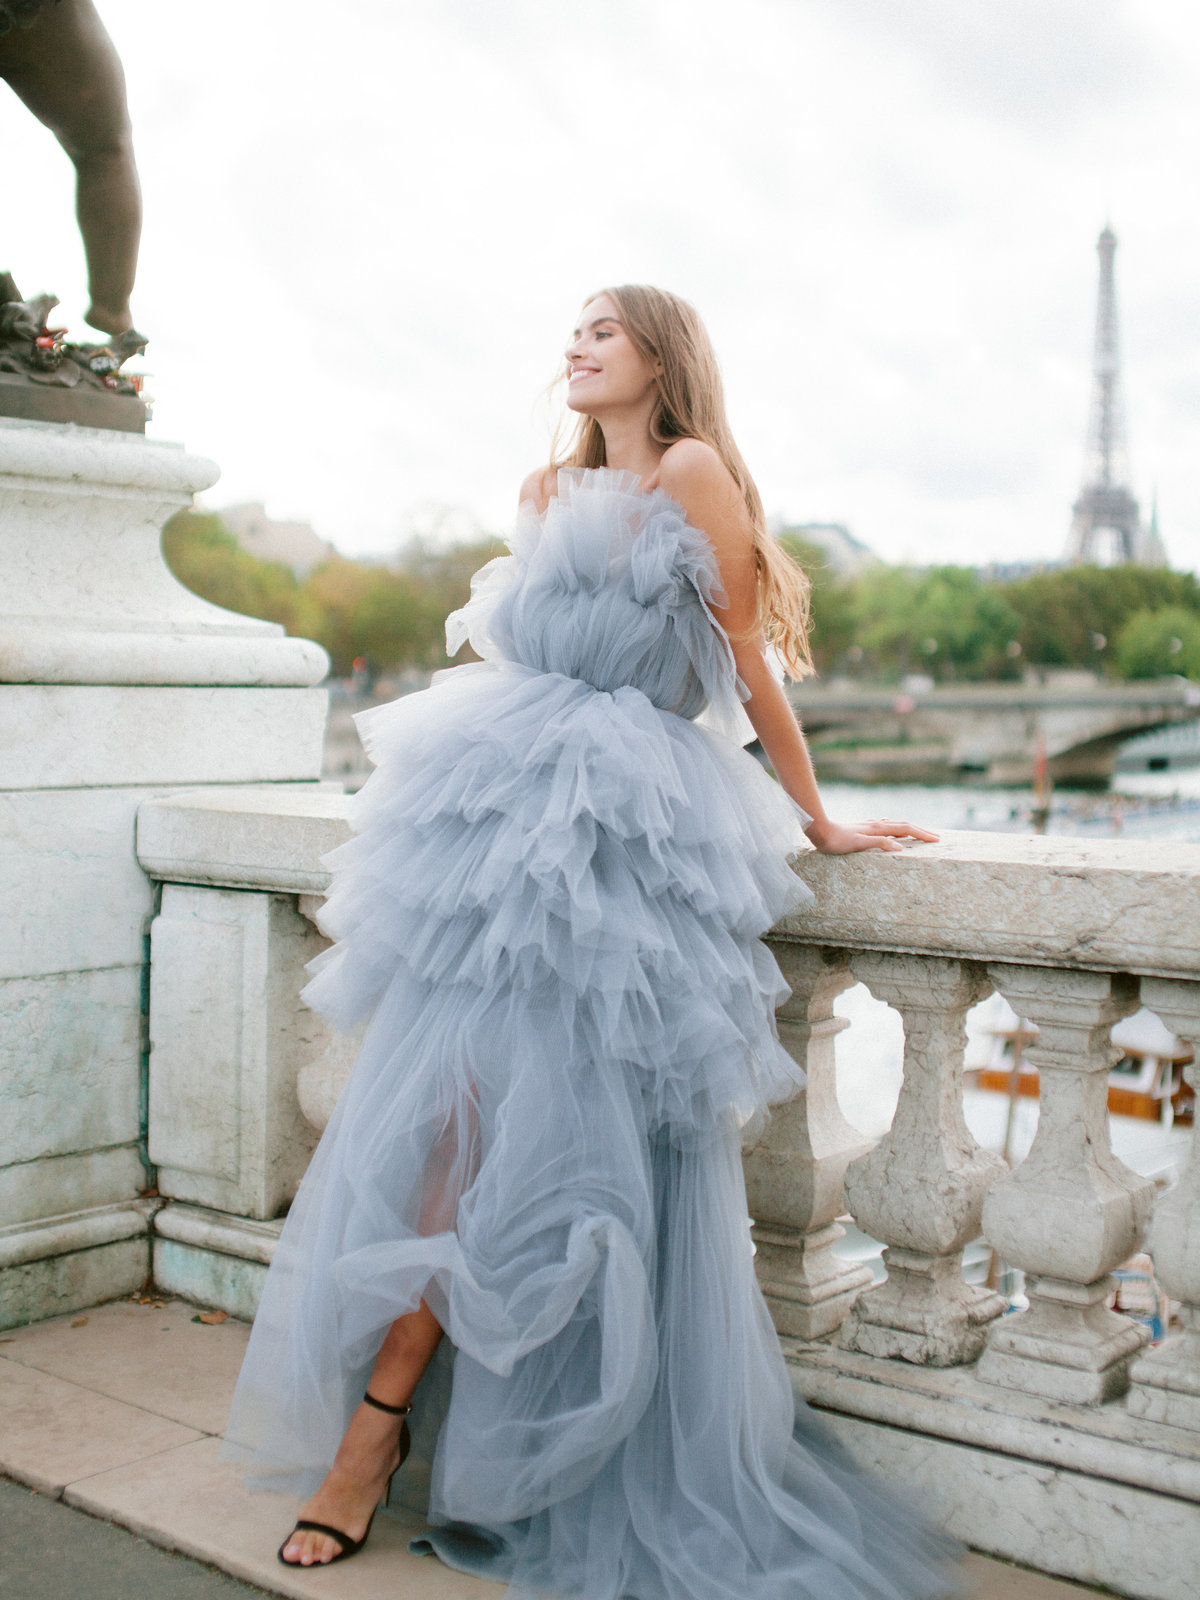 2019ParisStyleShoot-172